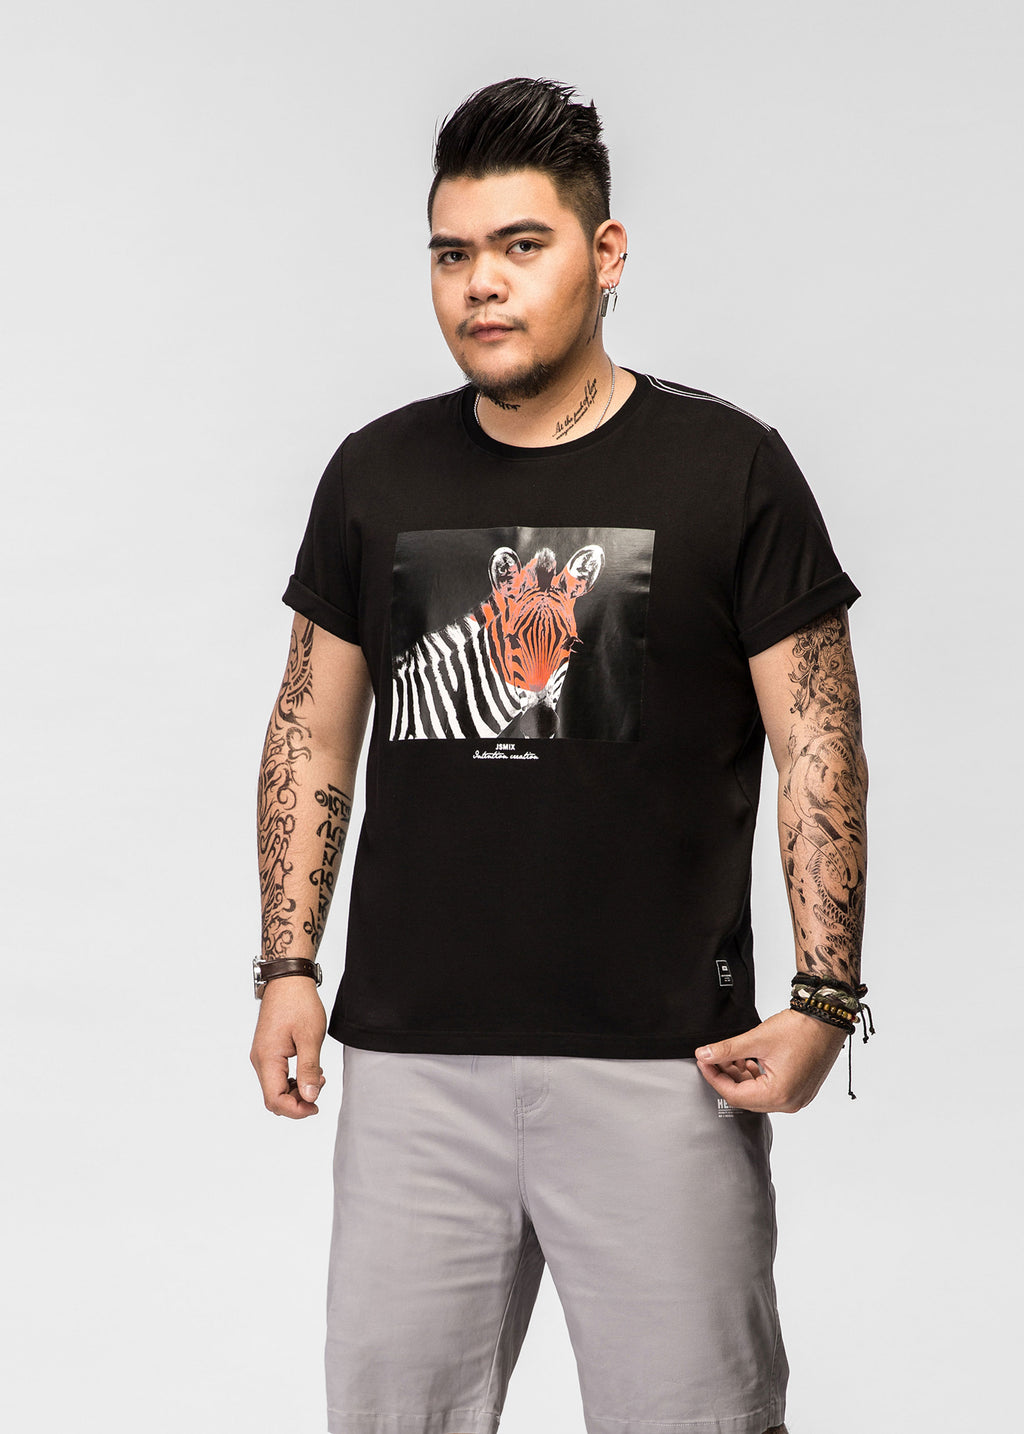 Zebra Graphic T-shirt - 82JT0914